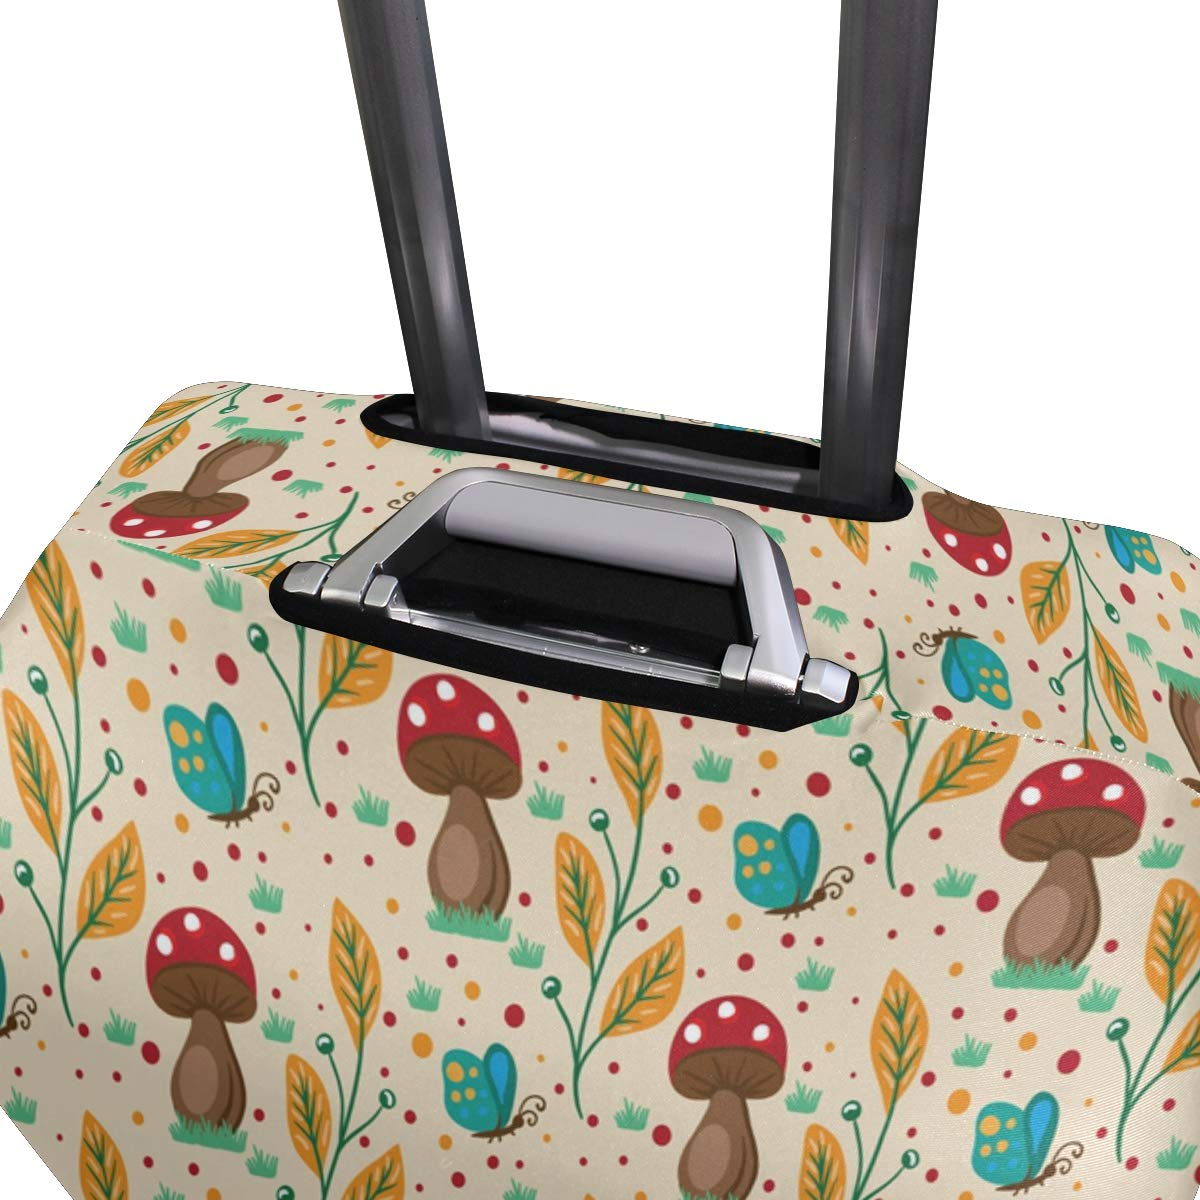 Baggage Covers Nature Mushroom Background Washable Protective Case